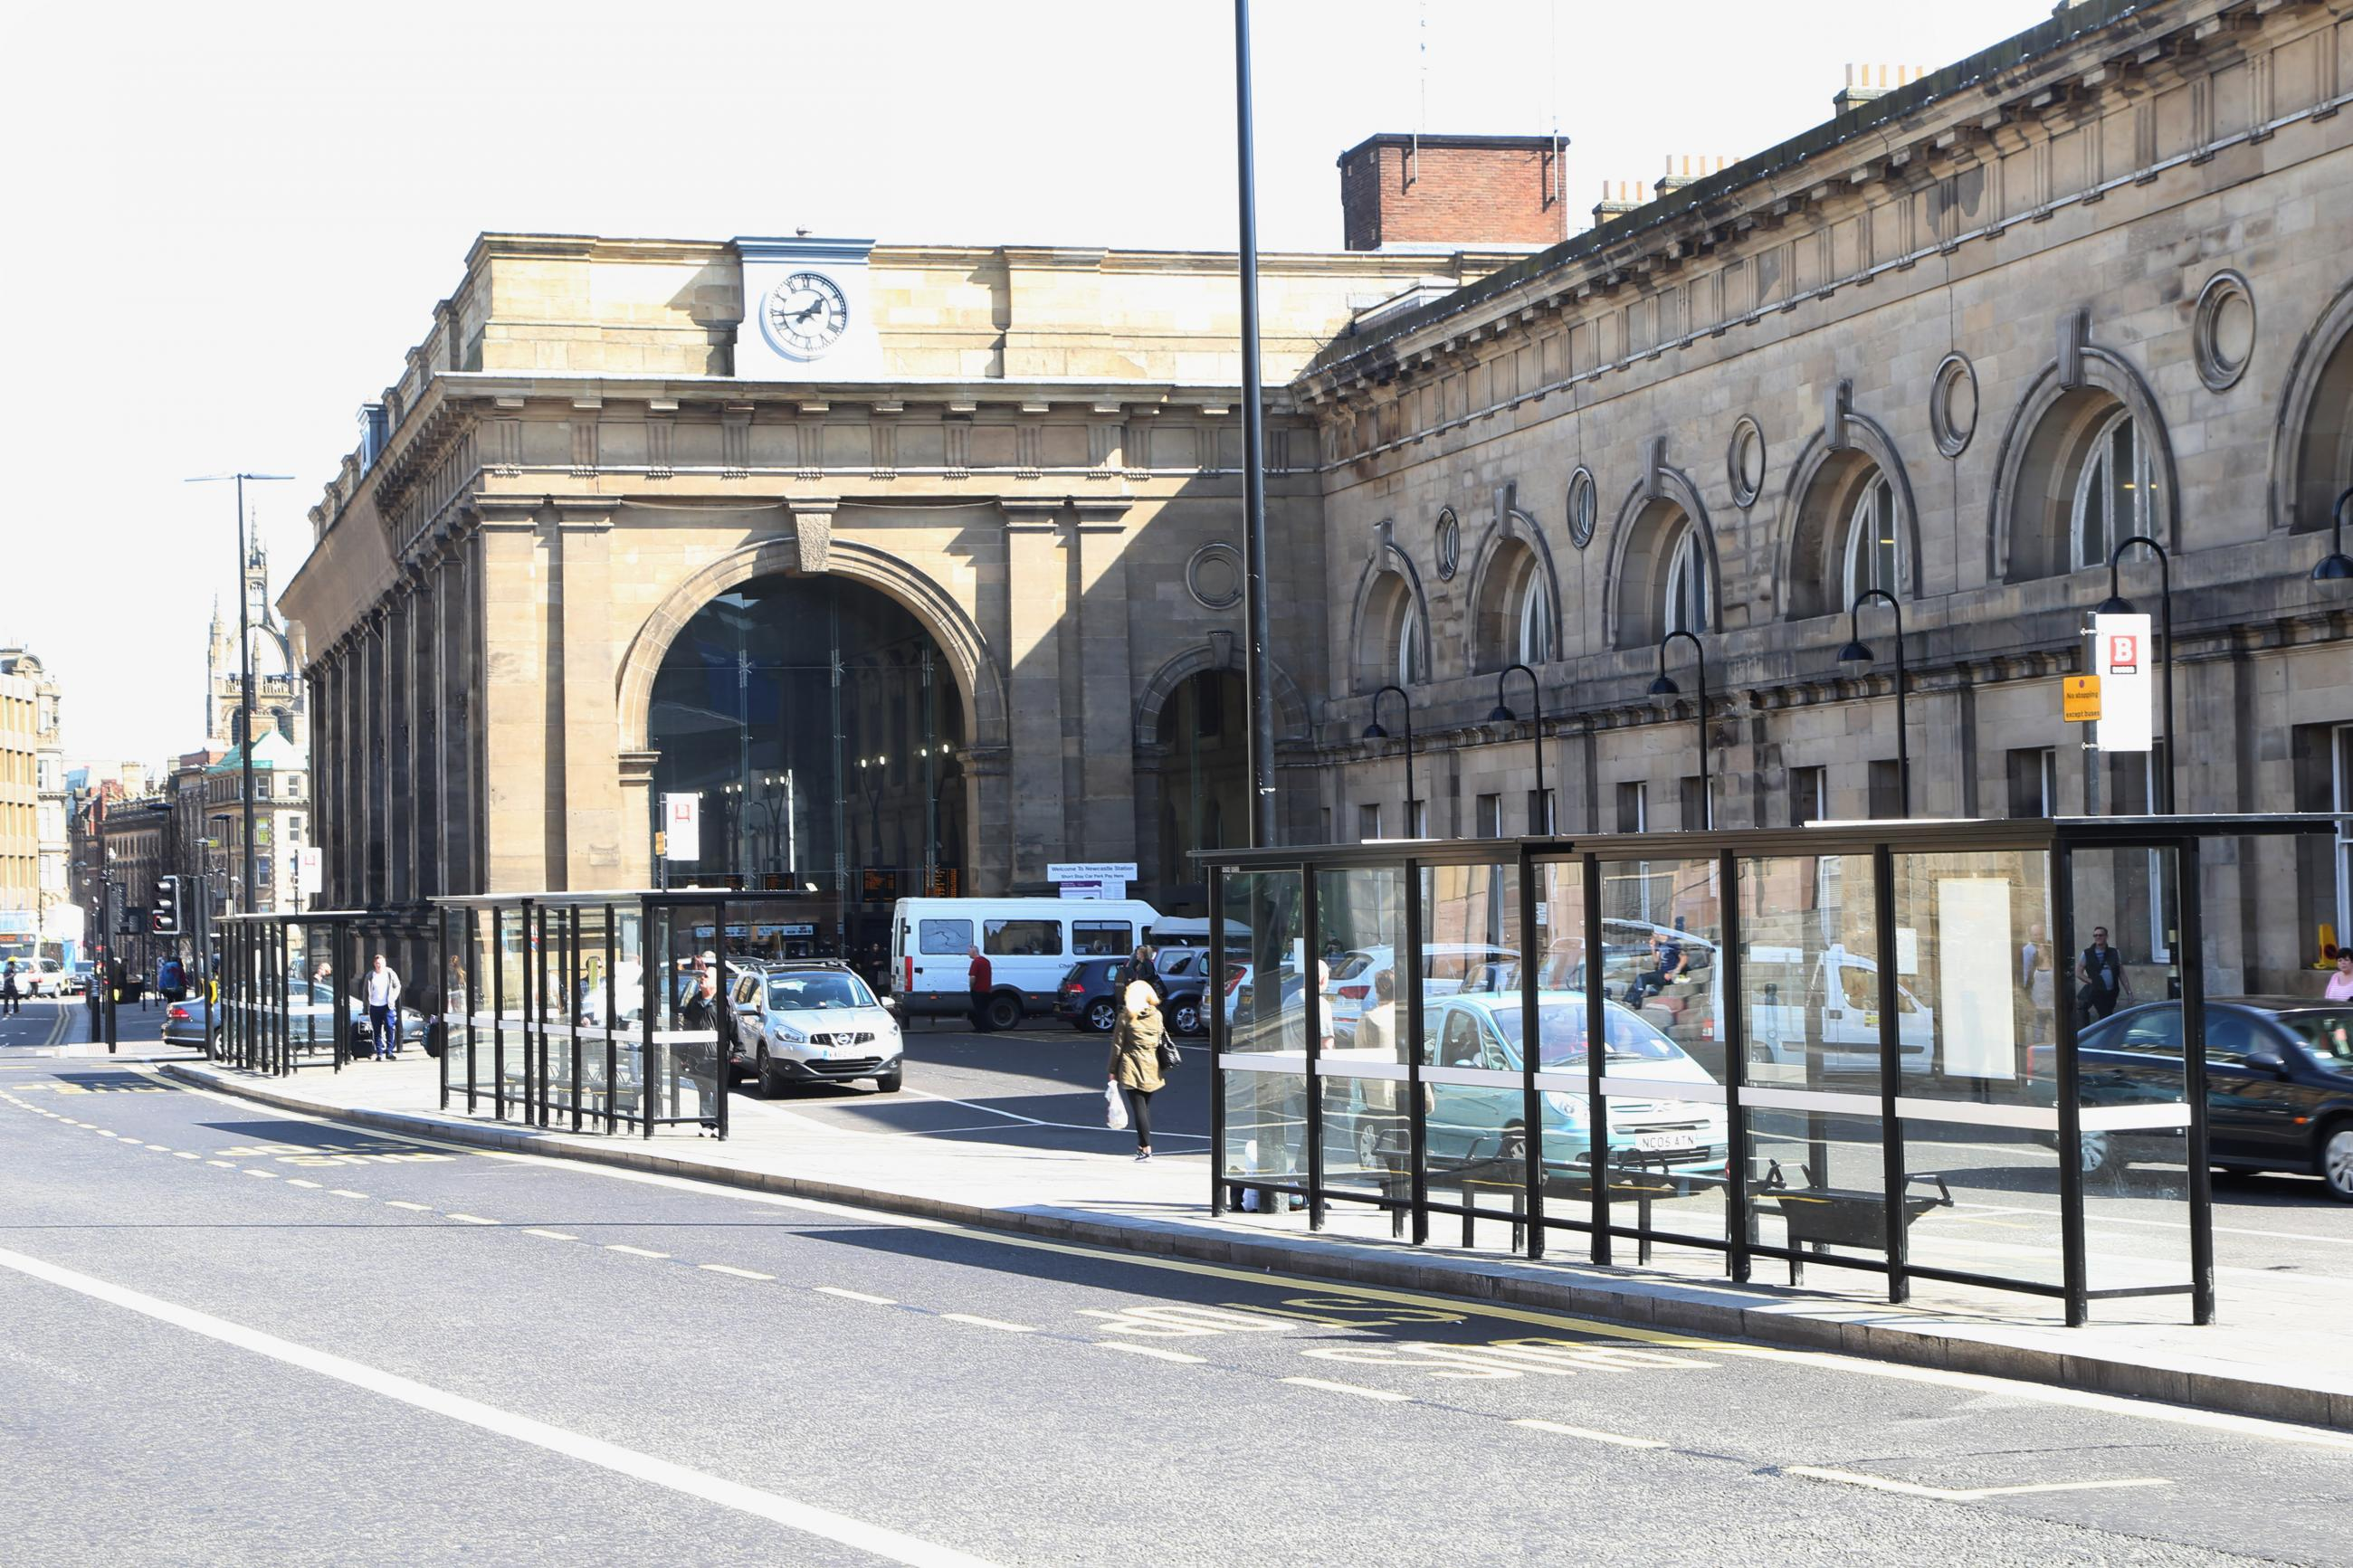 Photo showing the front of central station